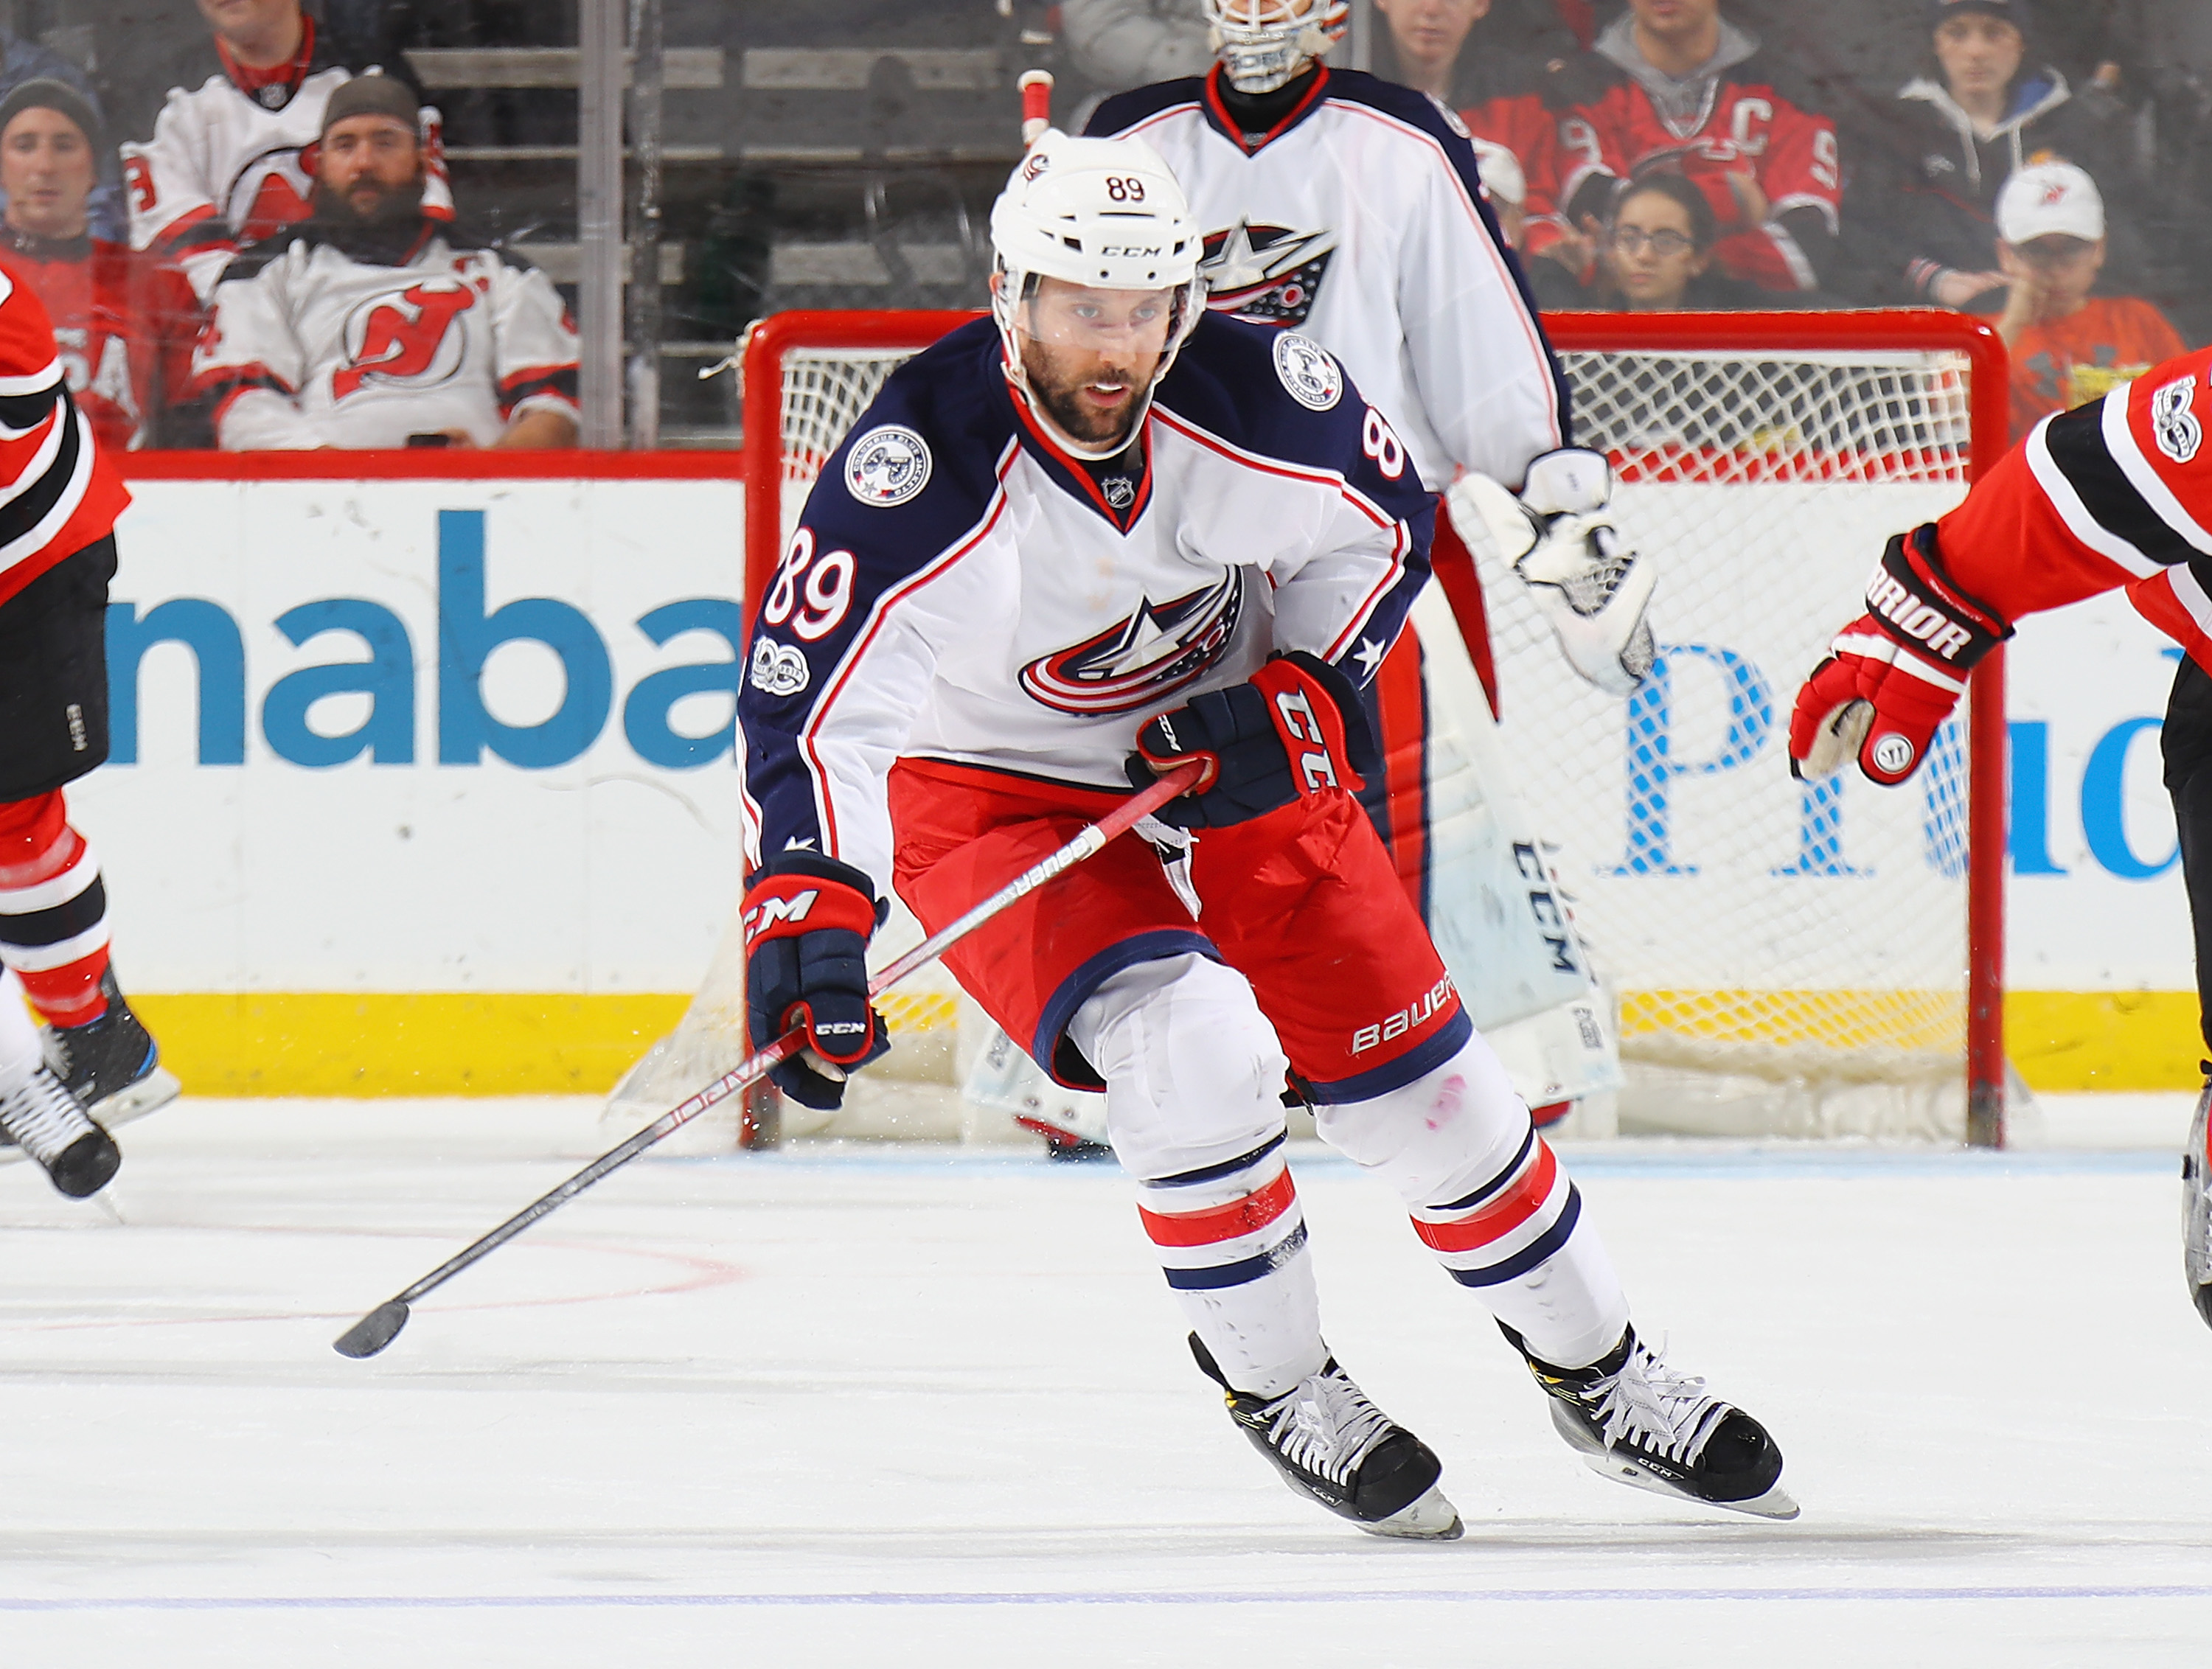 649542754-columbus-blue-jackets-v-new-jersey-devils.jpg